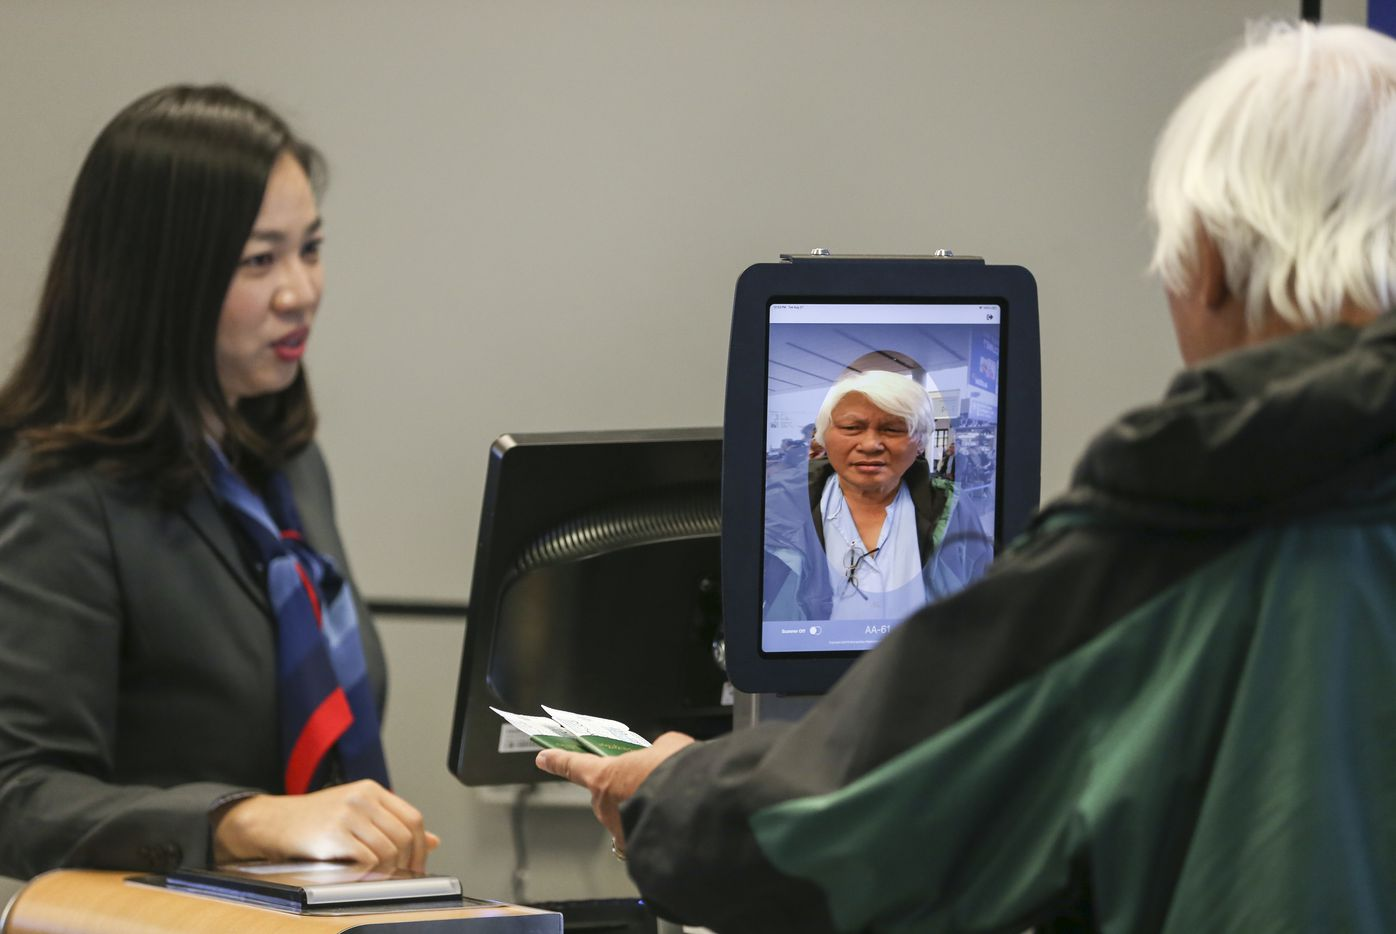 Gate agent Erica Shin assists as passengers board an American Airlines flight to Tokyo Narita International Airport using facial biometric scanning Tuesday, Aug. 27, 2019 in Terminal D of DFW Airport. The iPad device, which is currently only in use for international travelers, matches faces with the U.S. Customs and Border Protection (CBP) database, which includes passport photos. The information collected is transmitted only to CBP and not to independent airlines.